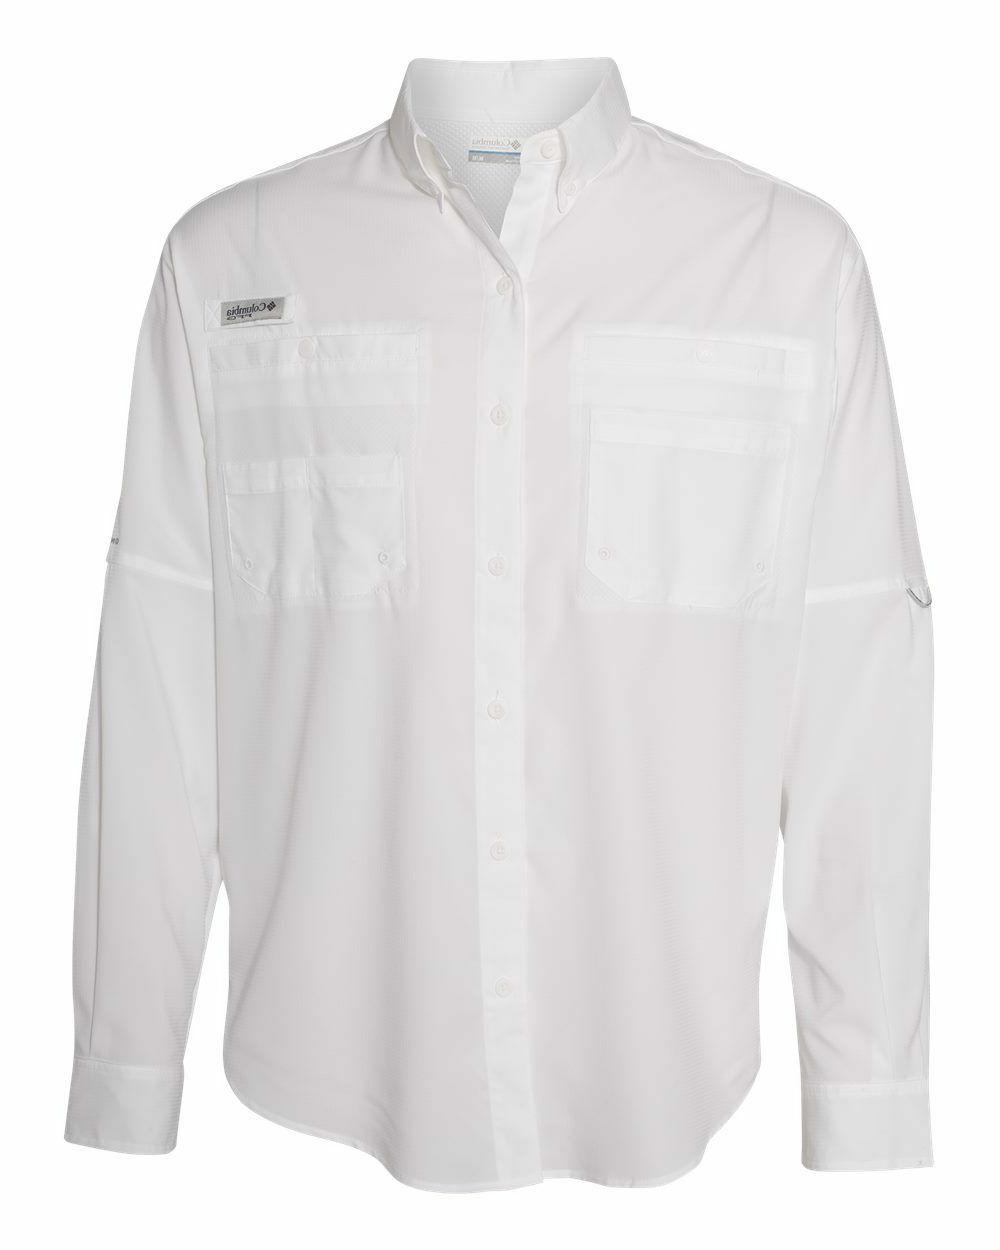 Columbia Men's Tamiami II, Long Shirt, Ripstop, S-3XL